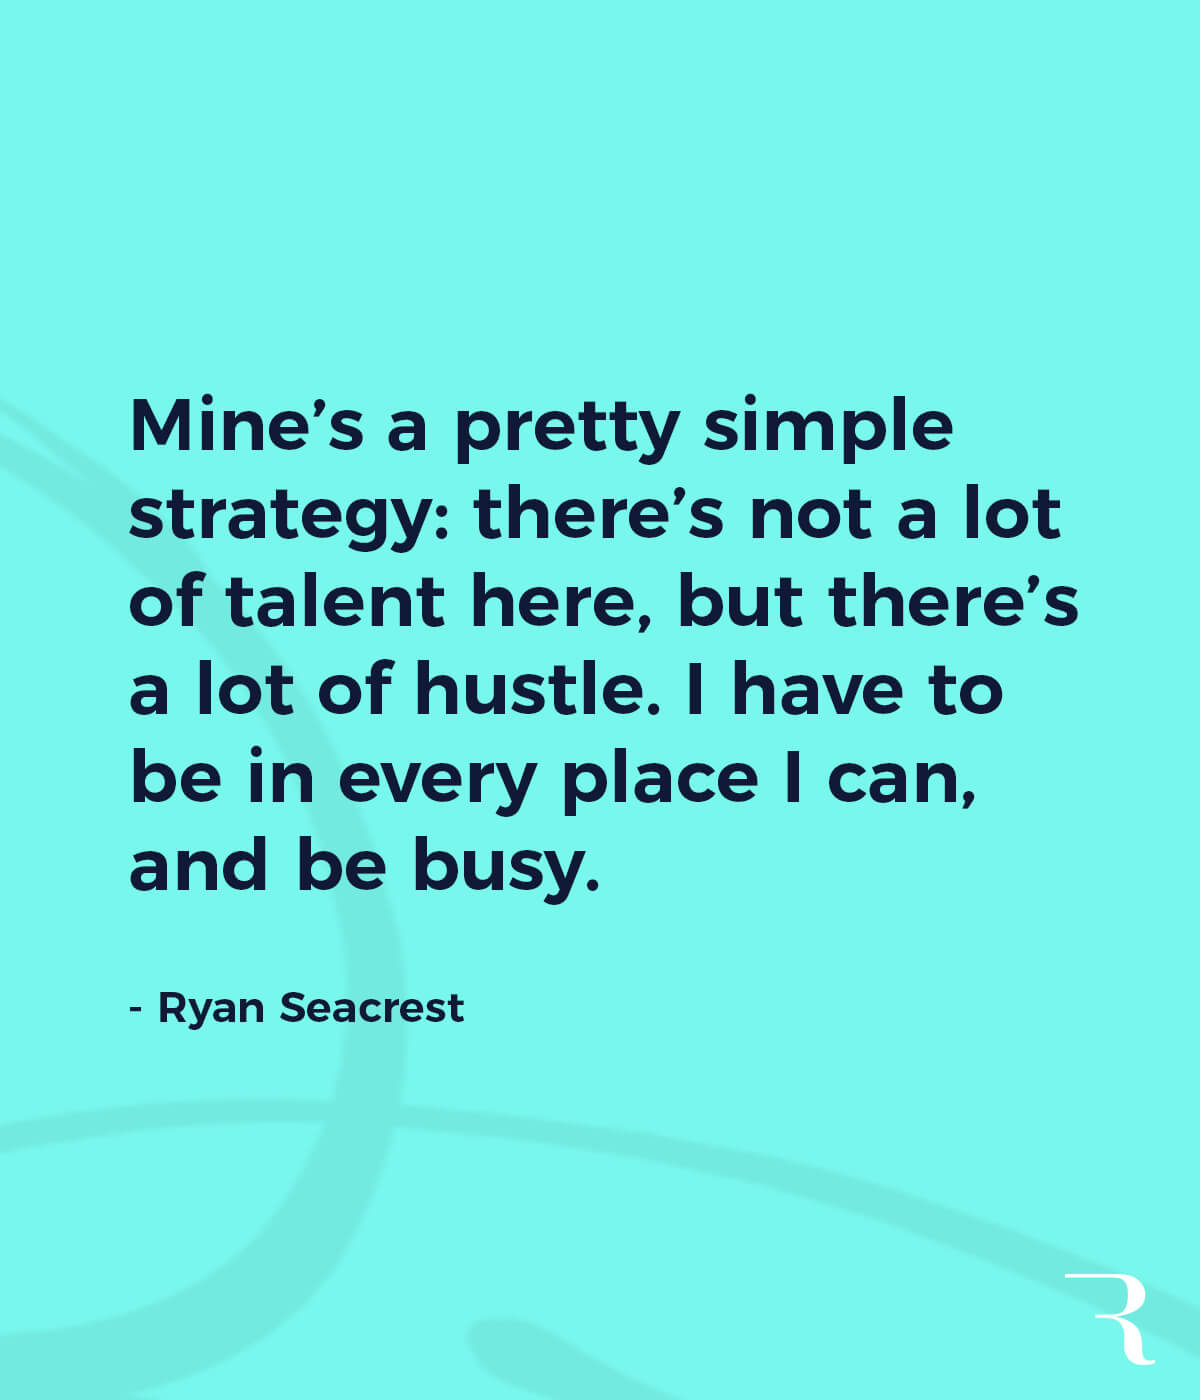 """Motivational Quotes: """"There's not a lot of talent here, but there's a lot of hustle. I have to be in every place I can."""" 112 Motivational Quotes to Be a Better Entrepreneur"""